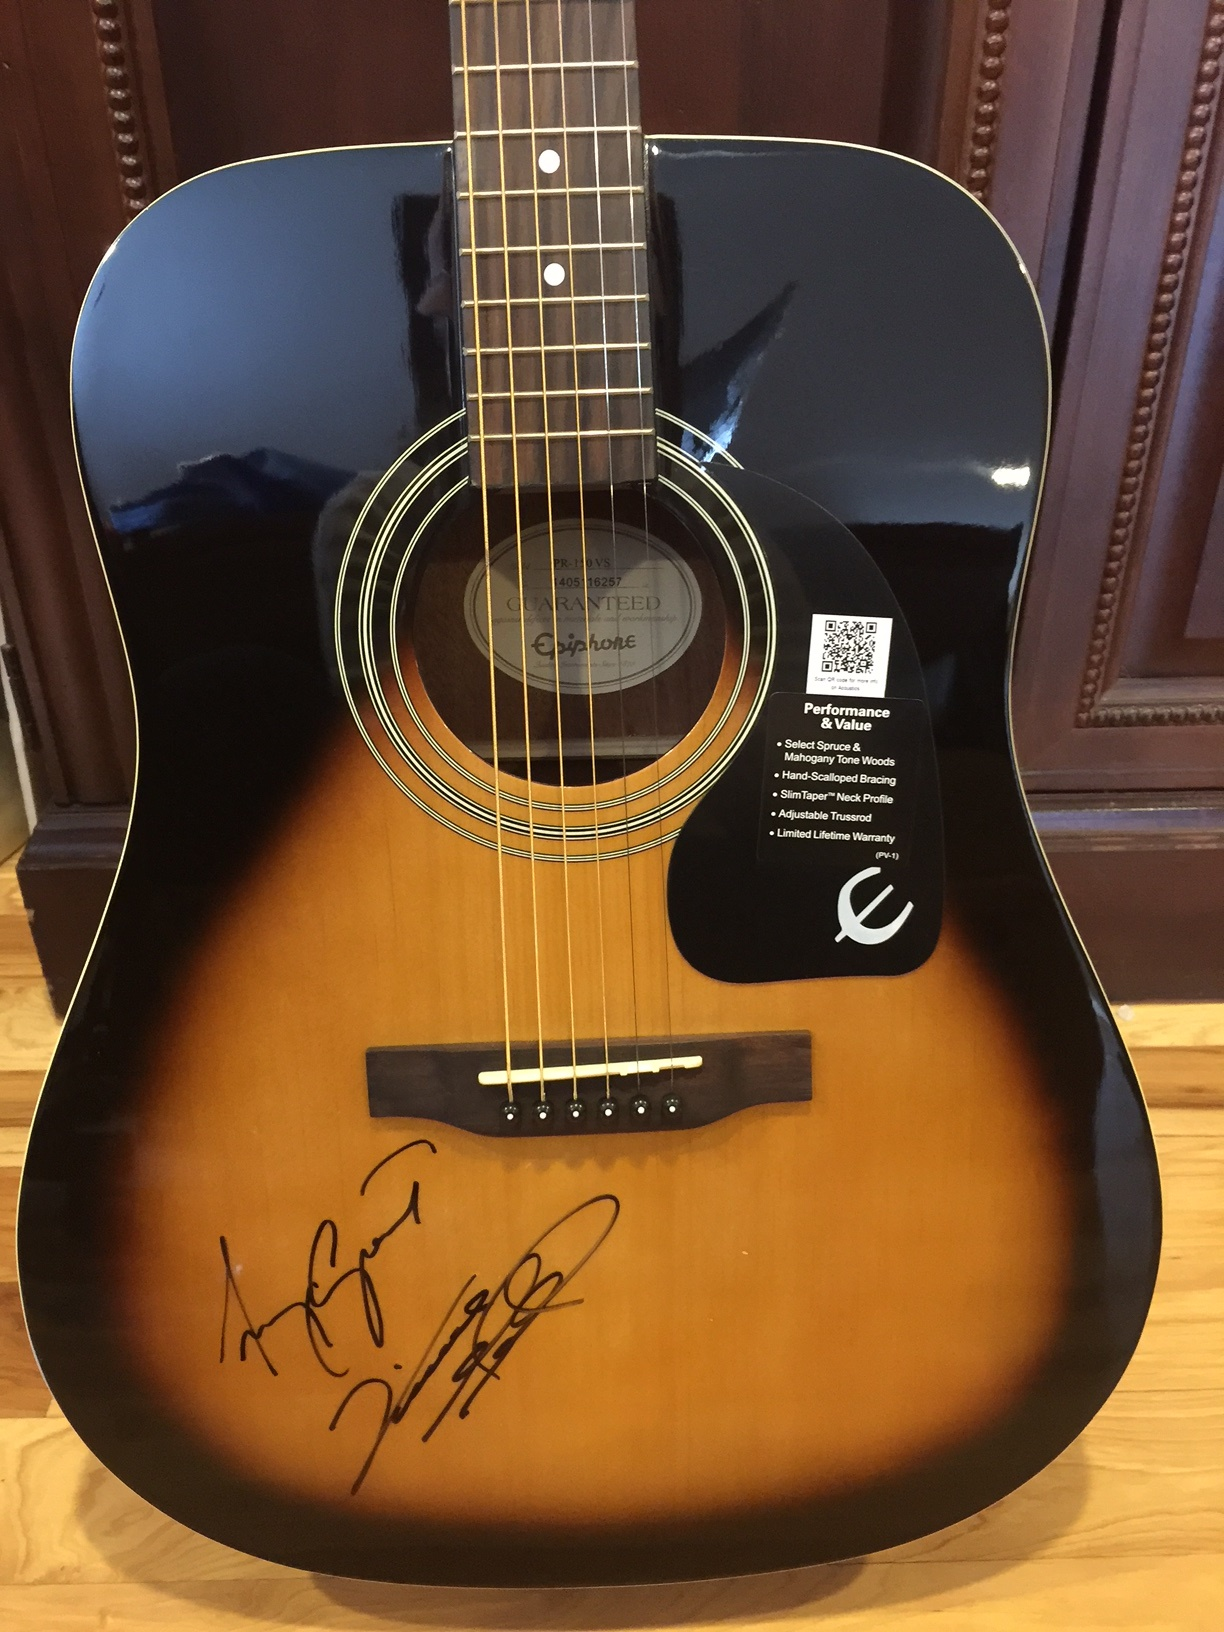 Gipson_Epiphone_Grant_Gill_Signed_Guitar_2.jpg